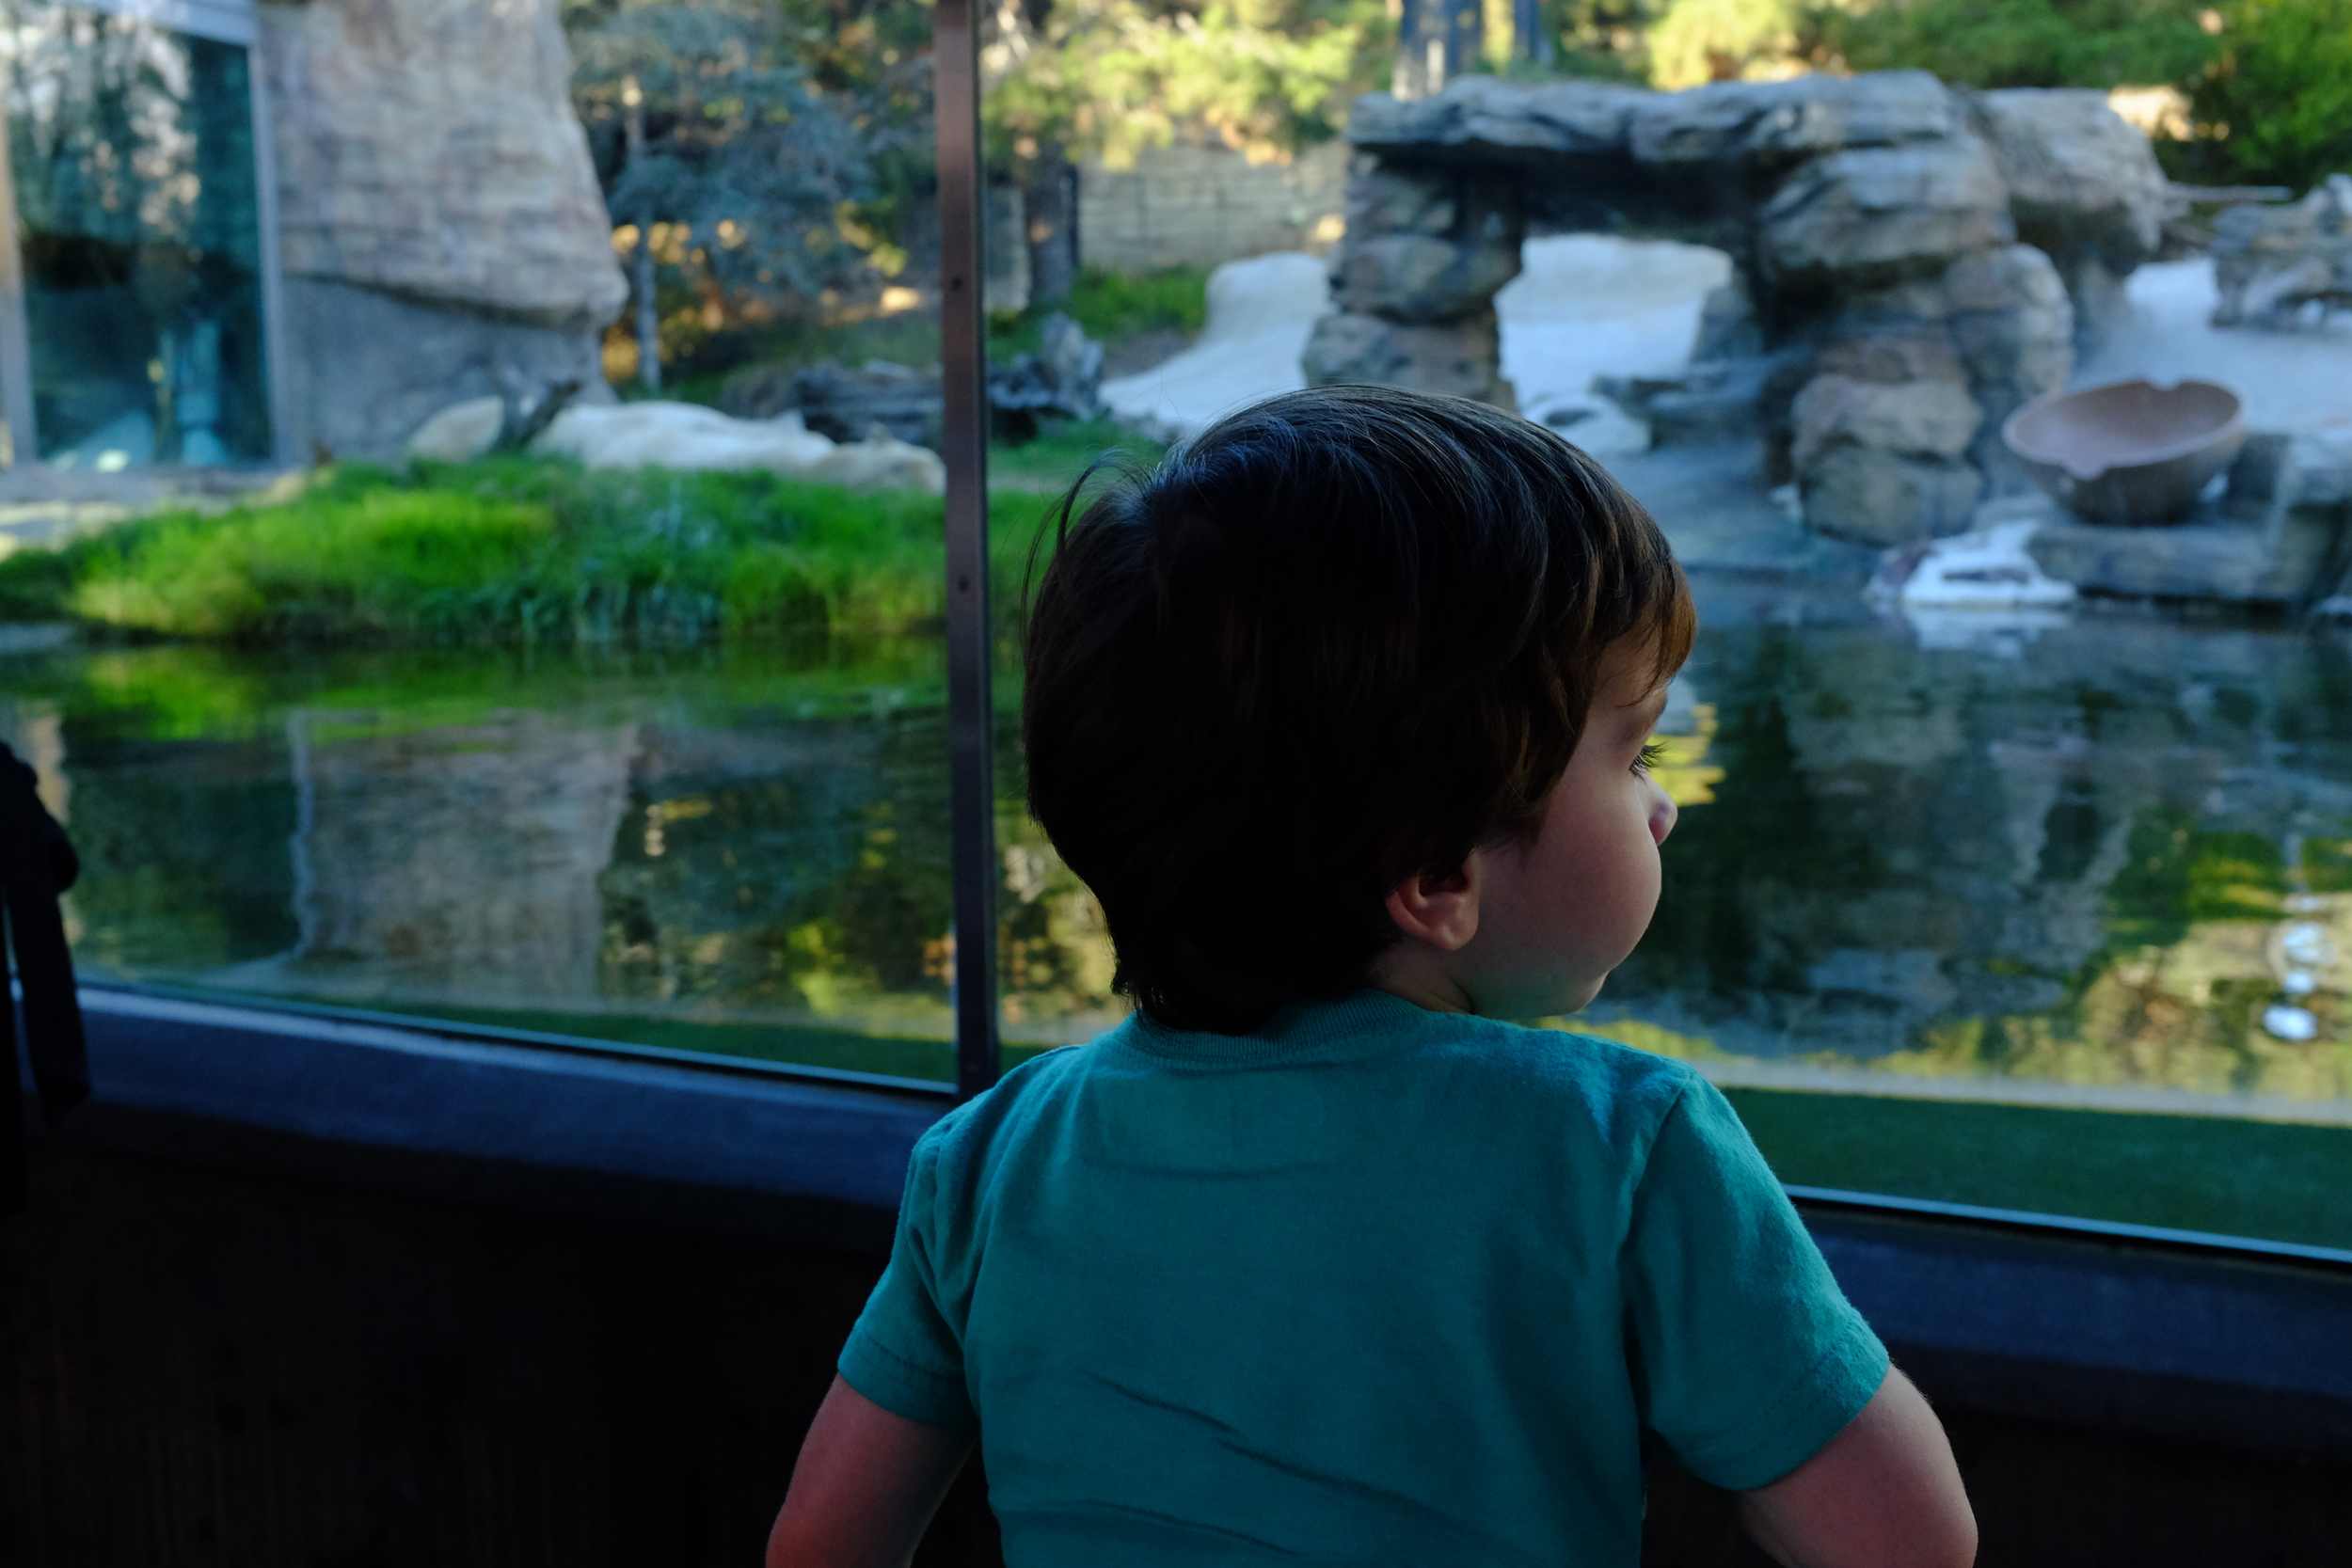 Jackson checks out the Polar Bears at the San Diego zoo